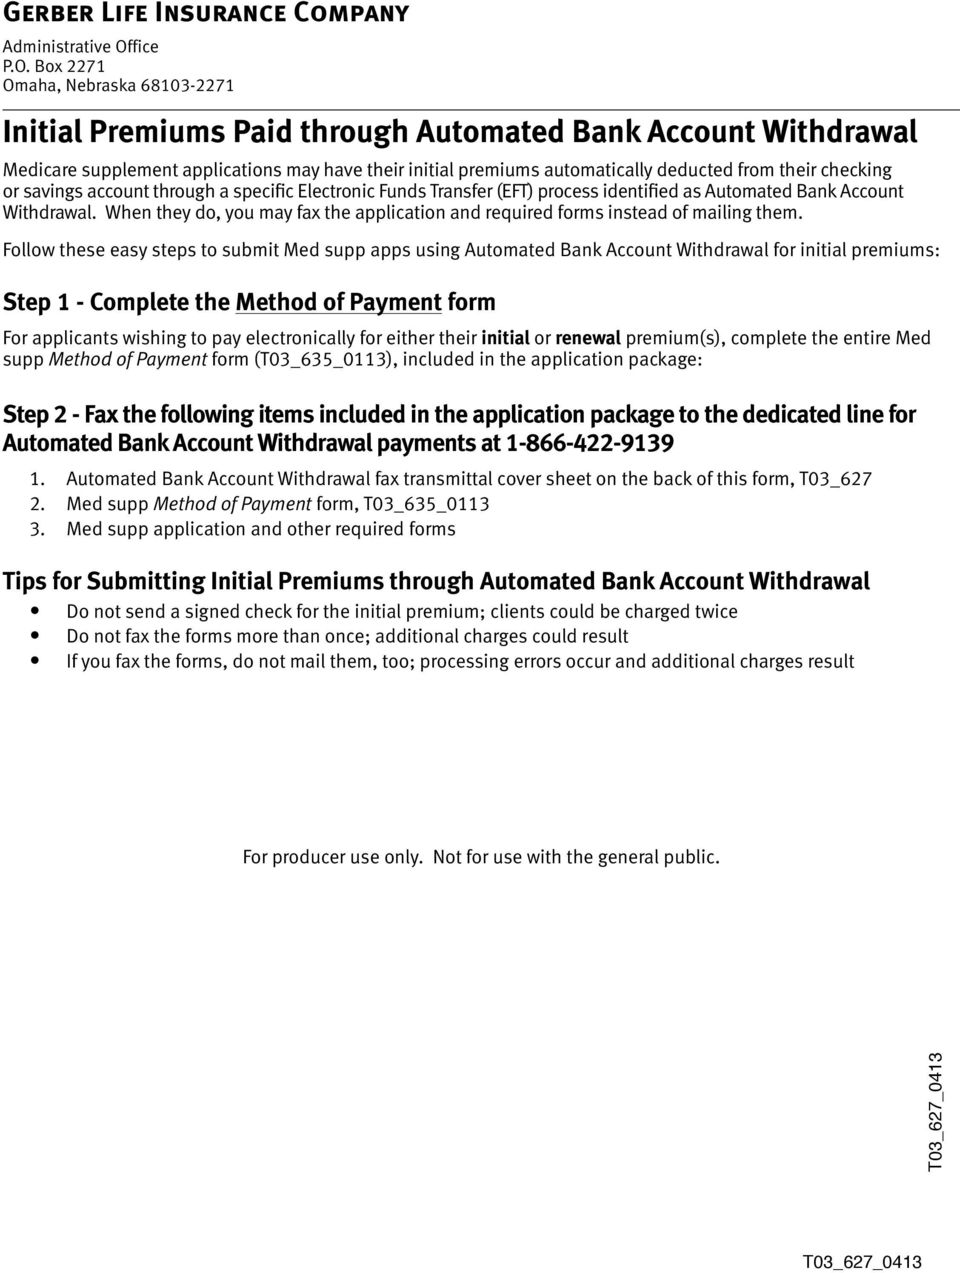 Box 2271 Omaha, ebraska 68103-2271 Initial Premiums Paid through Automated Bank Account Withdrawal Medicare supplement applications may have their initial premiums automatically deducted from their